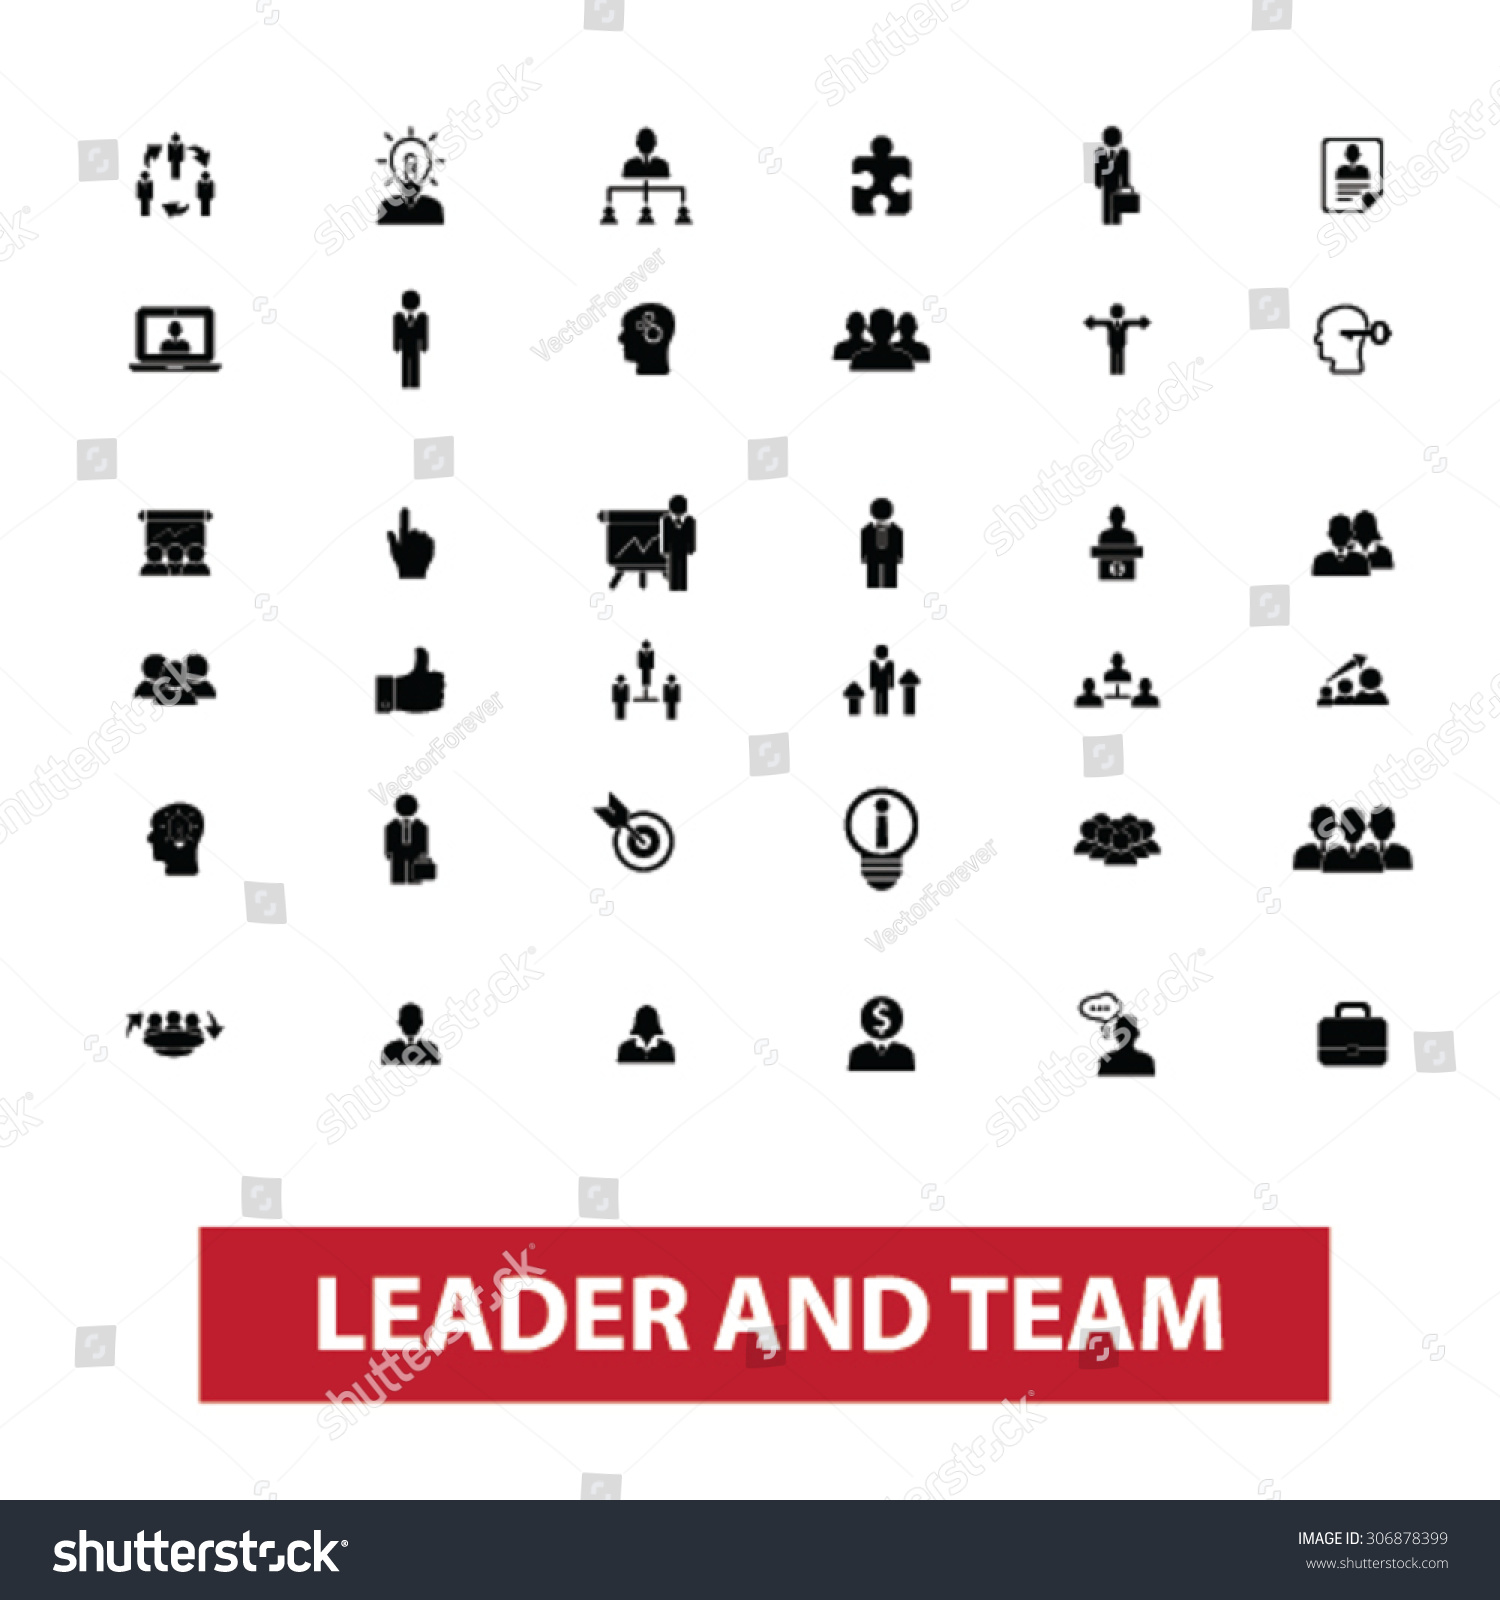 leader team leadership management human resources stock vector leader team leadership management human resources organization work avatar